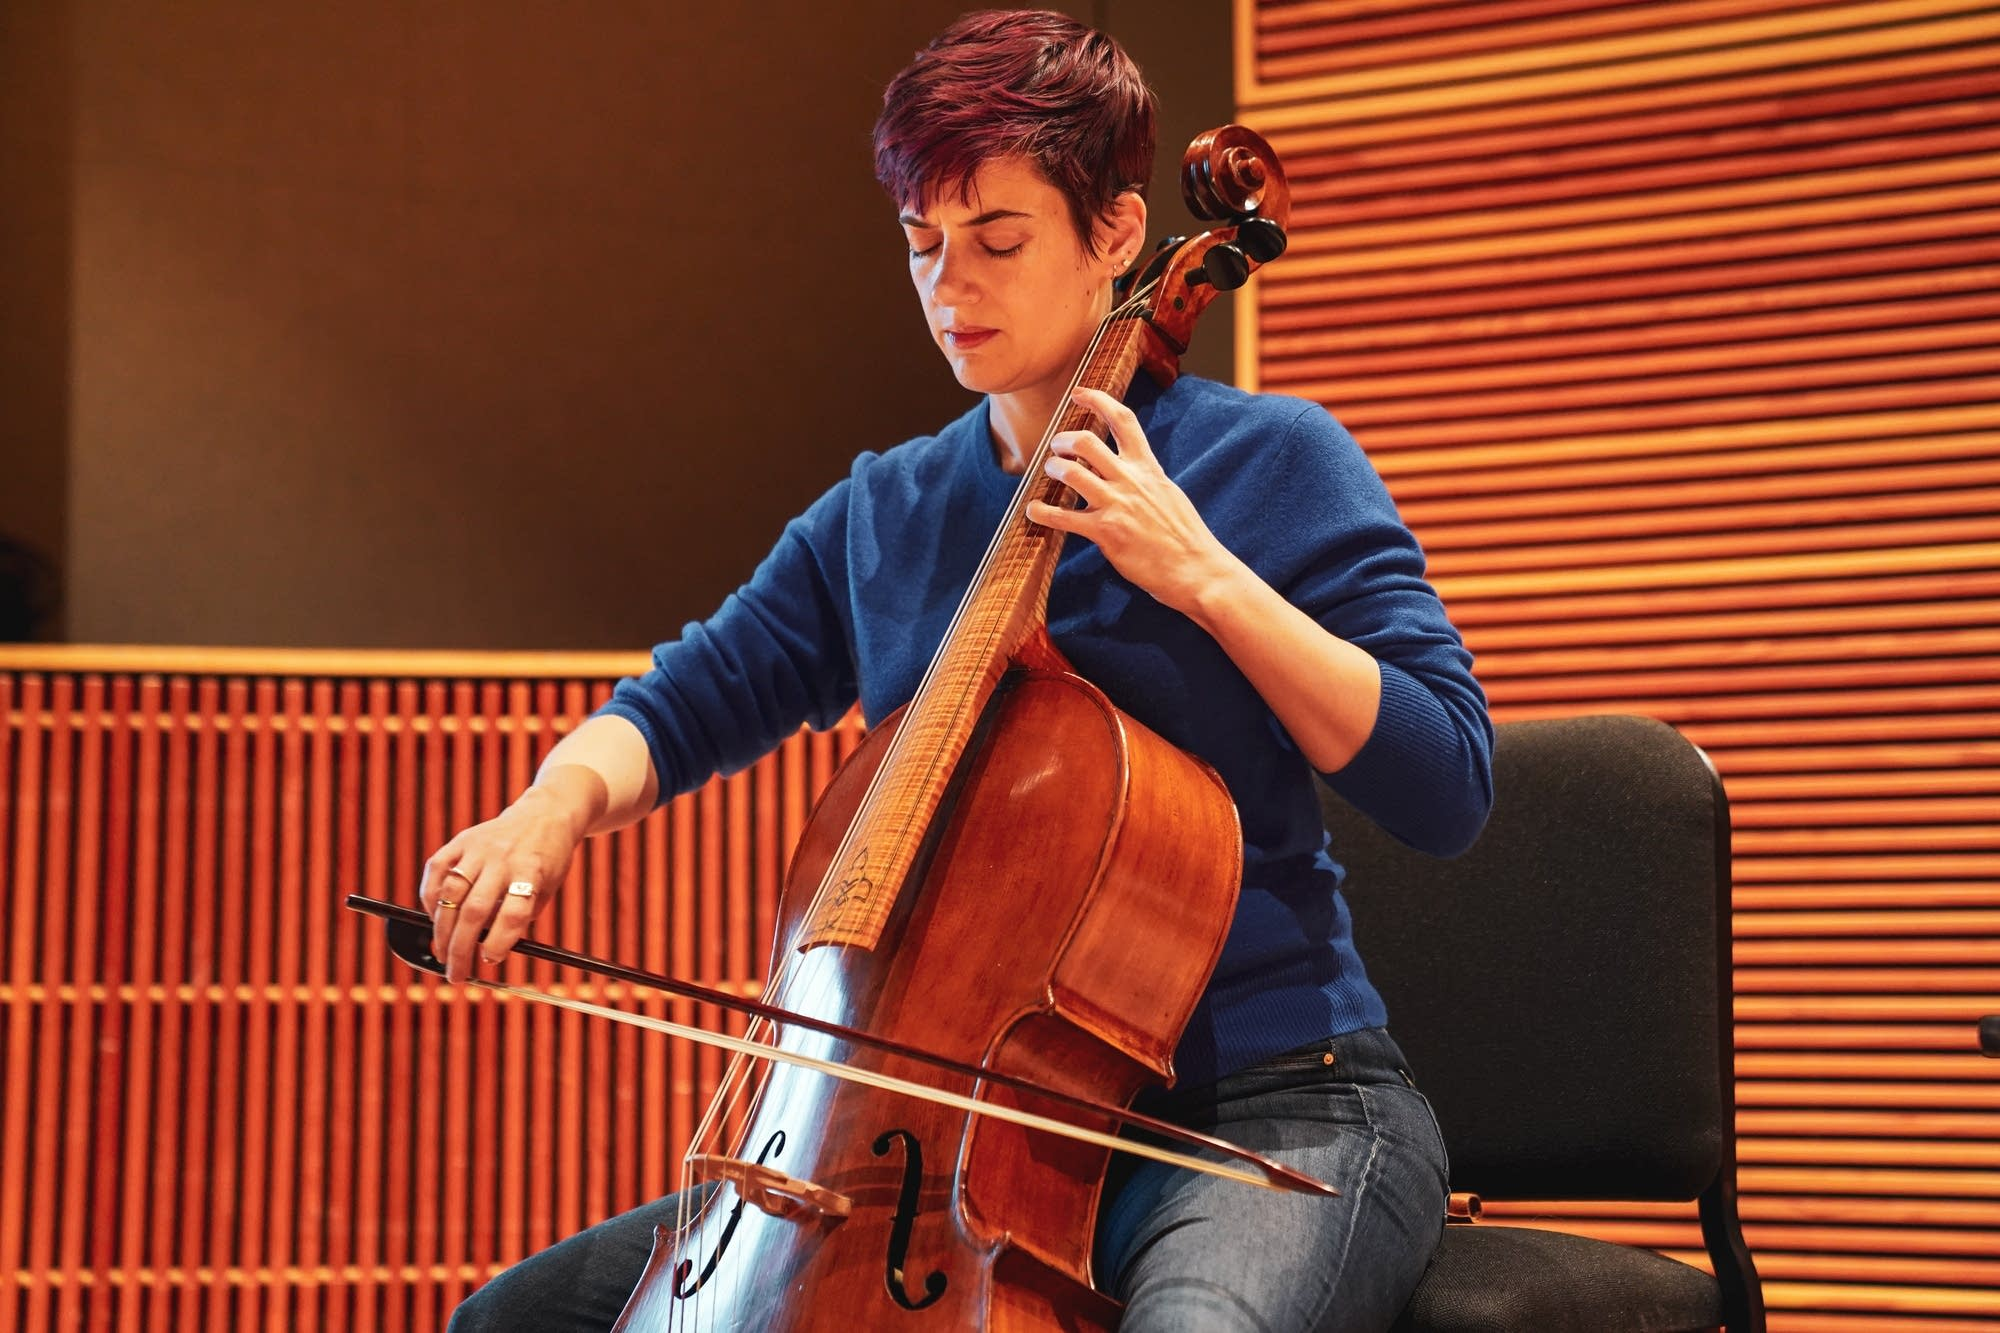 Cellist Juliana Soltis